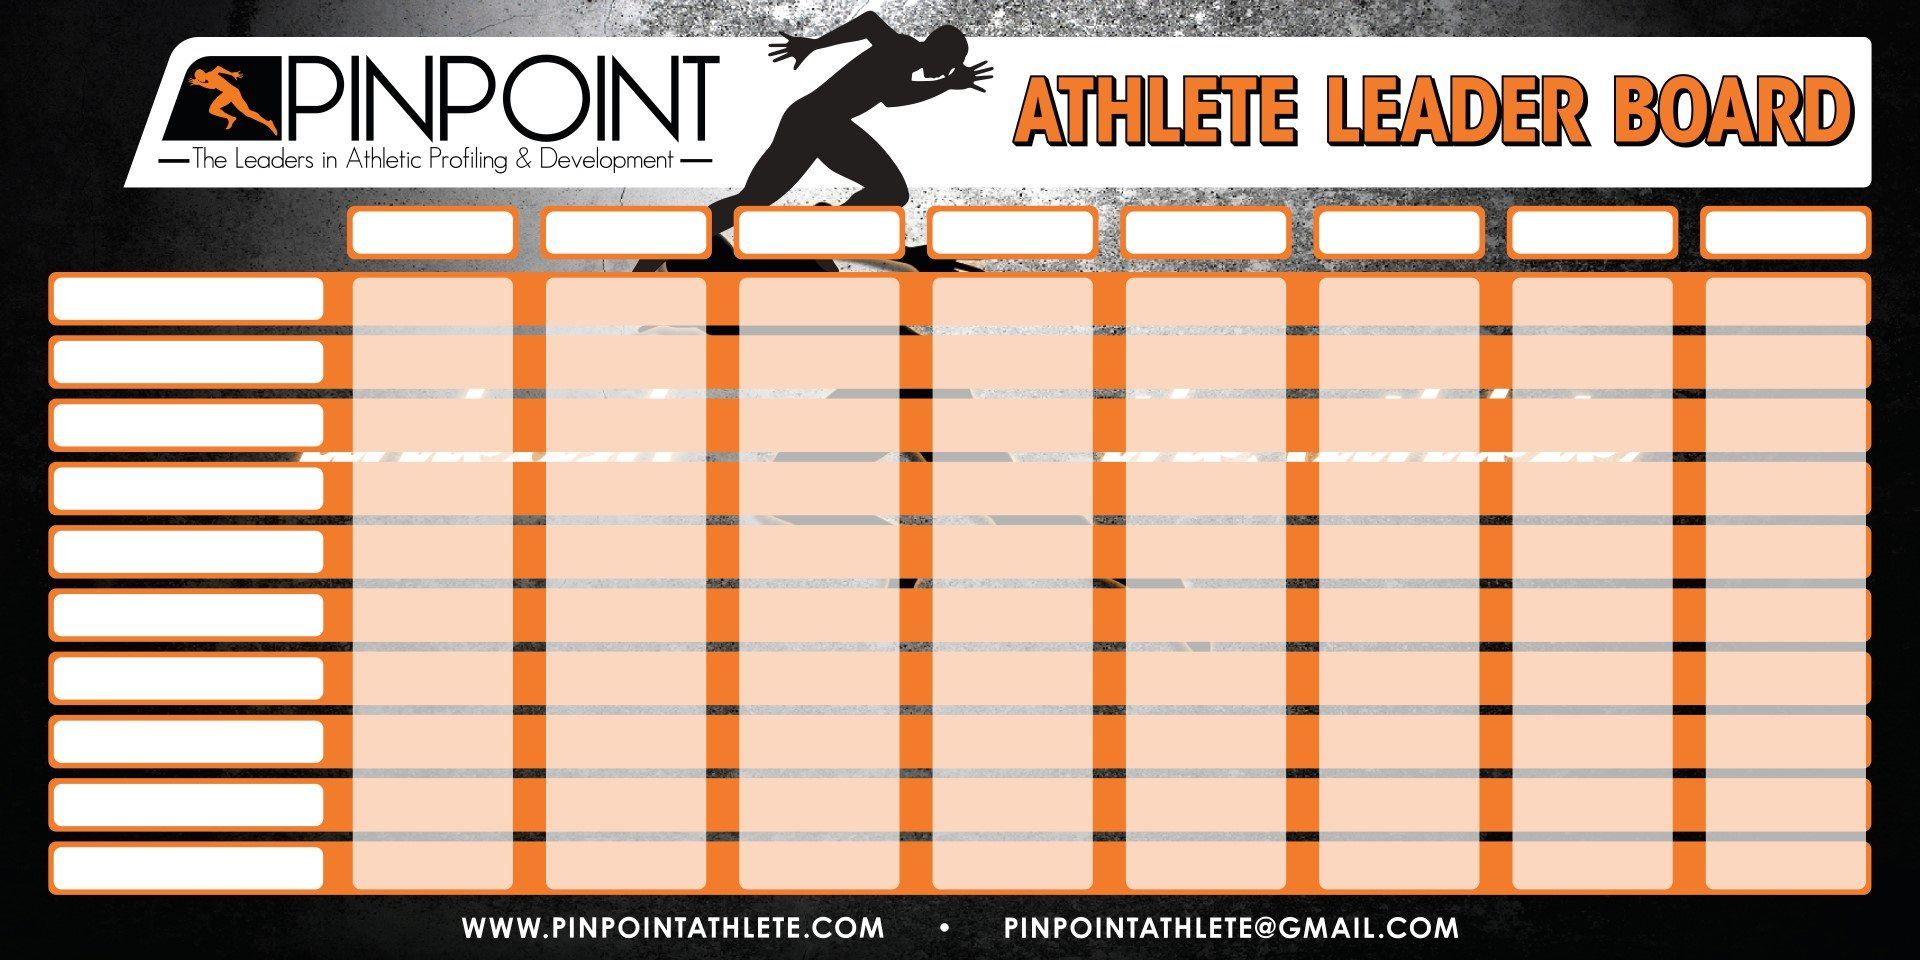 Pinpoint Athlete Leader Board